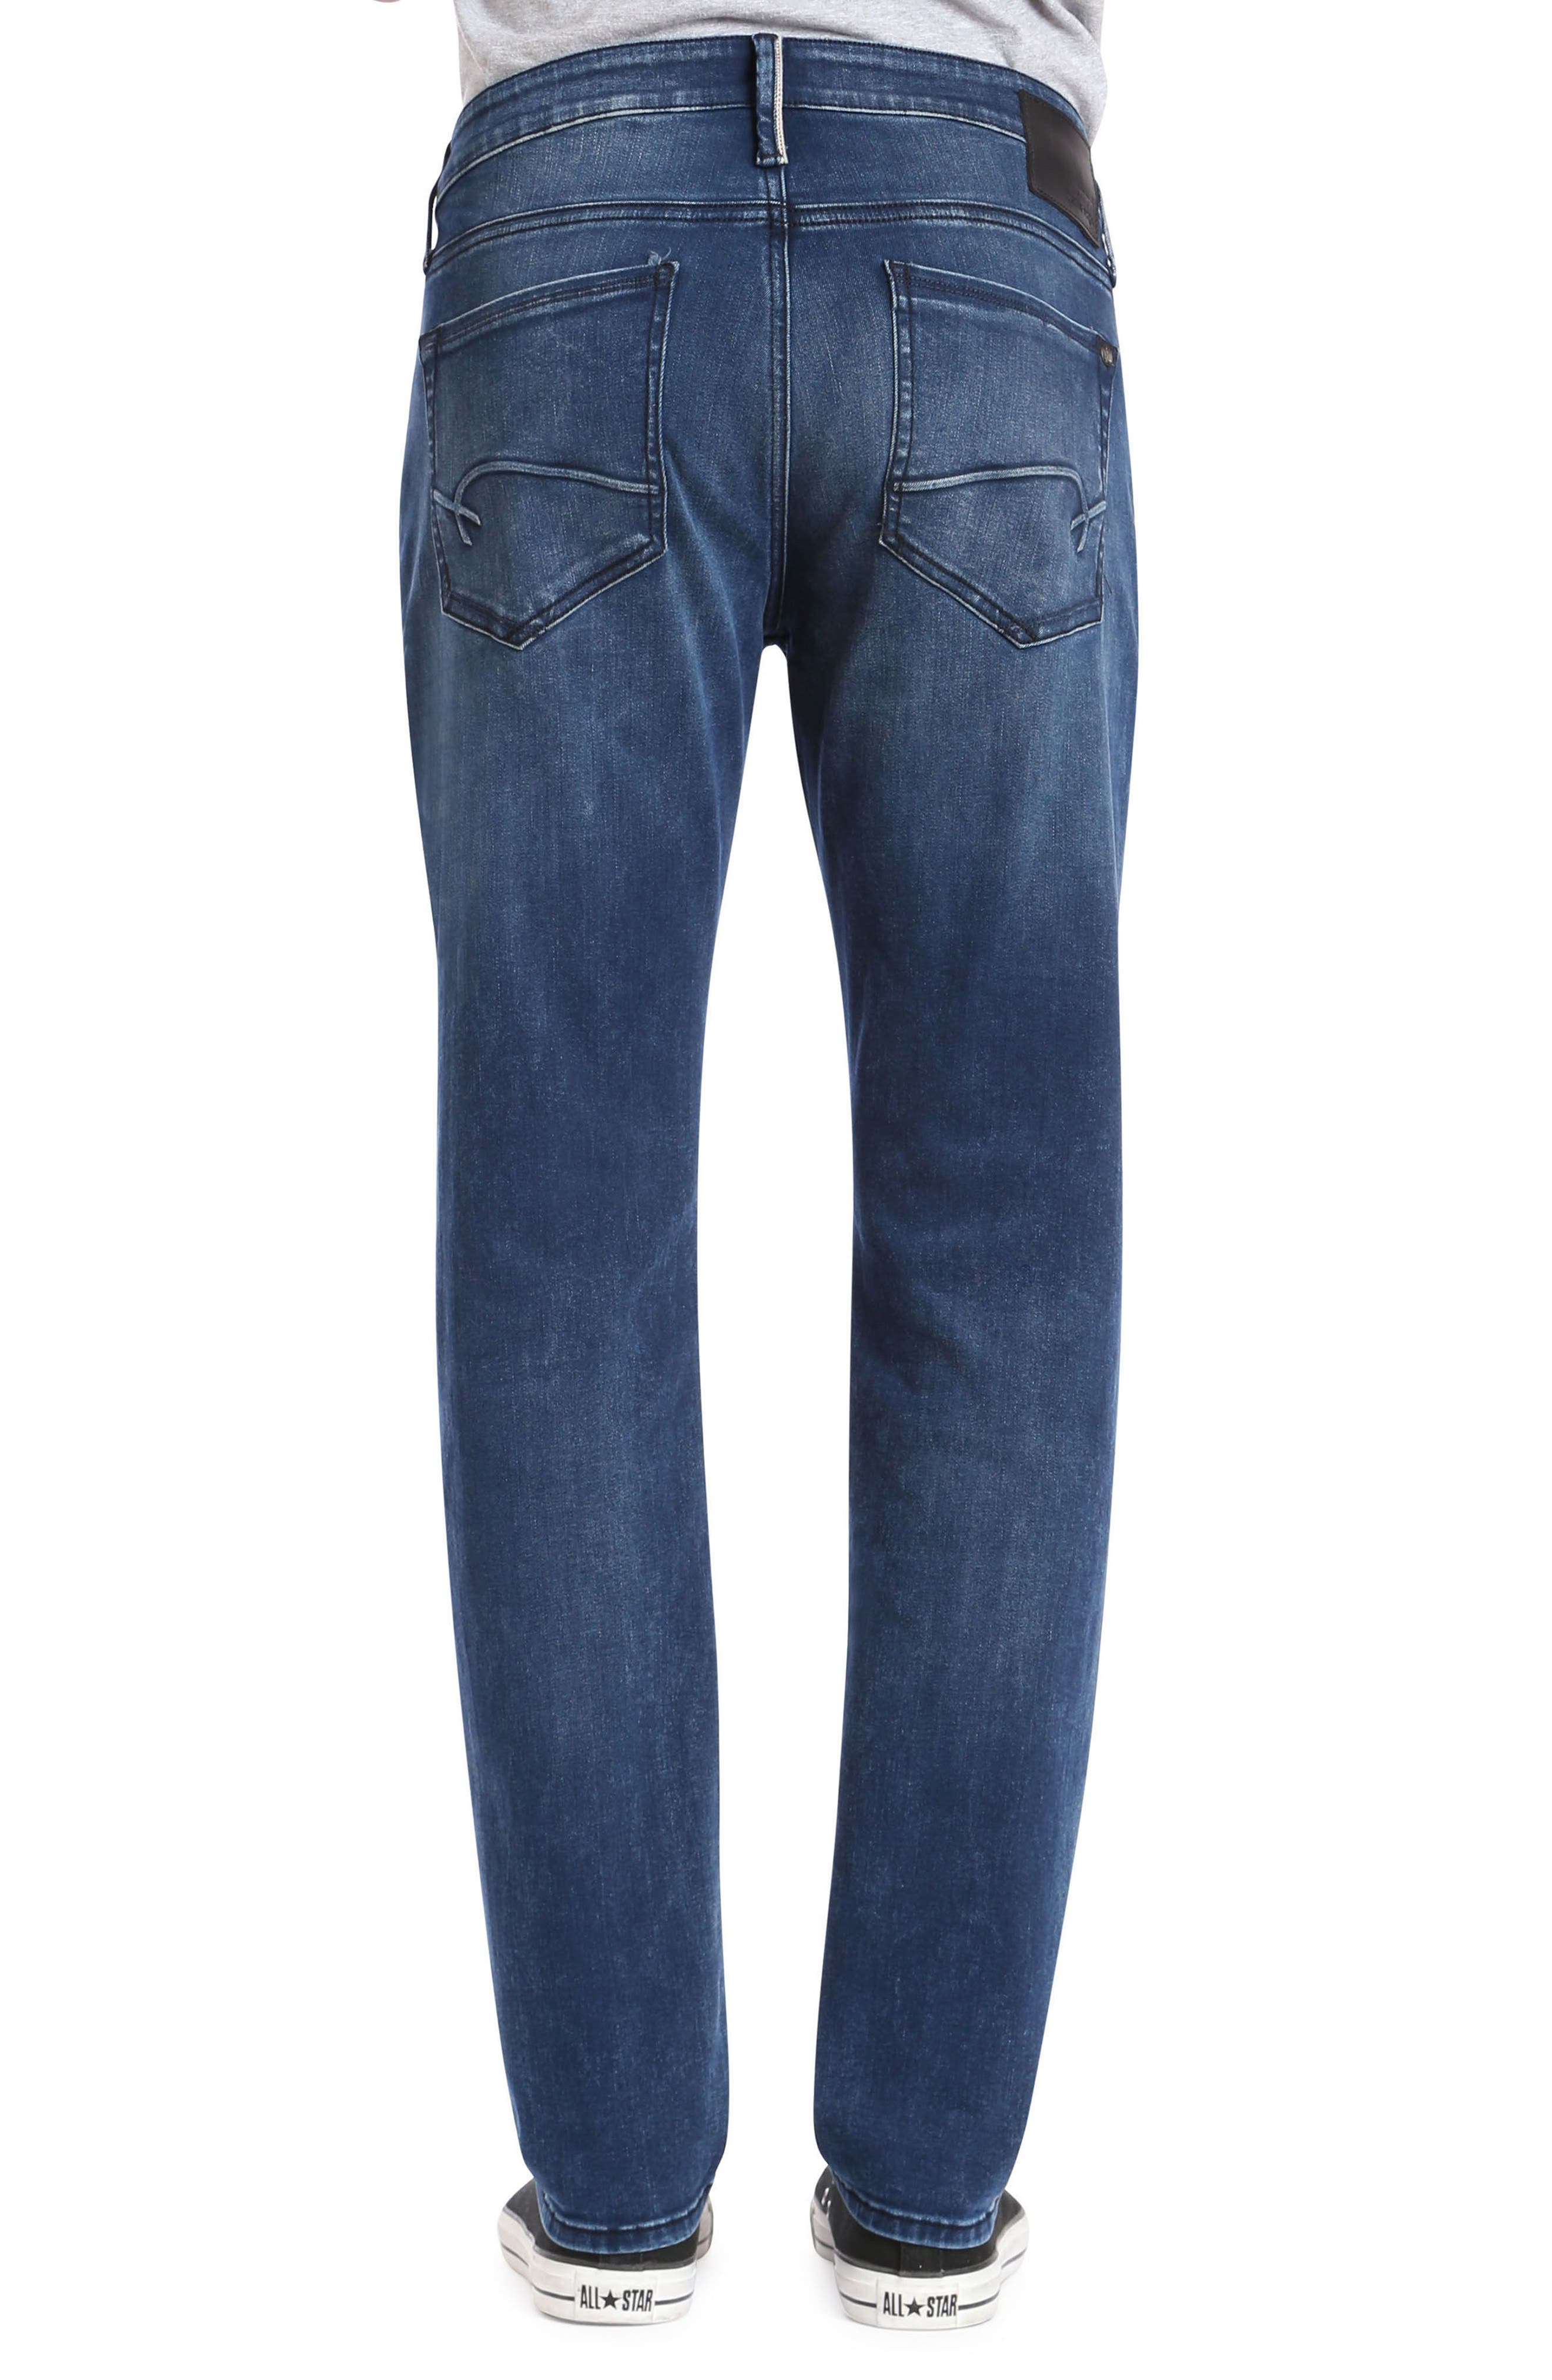 Marcus Slim Straight Leg Jeans,                             Alternate thumbnail 2, color,                             Forest Blue White Edge